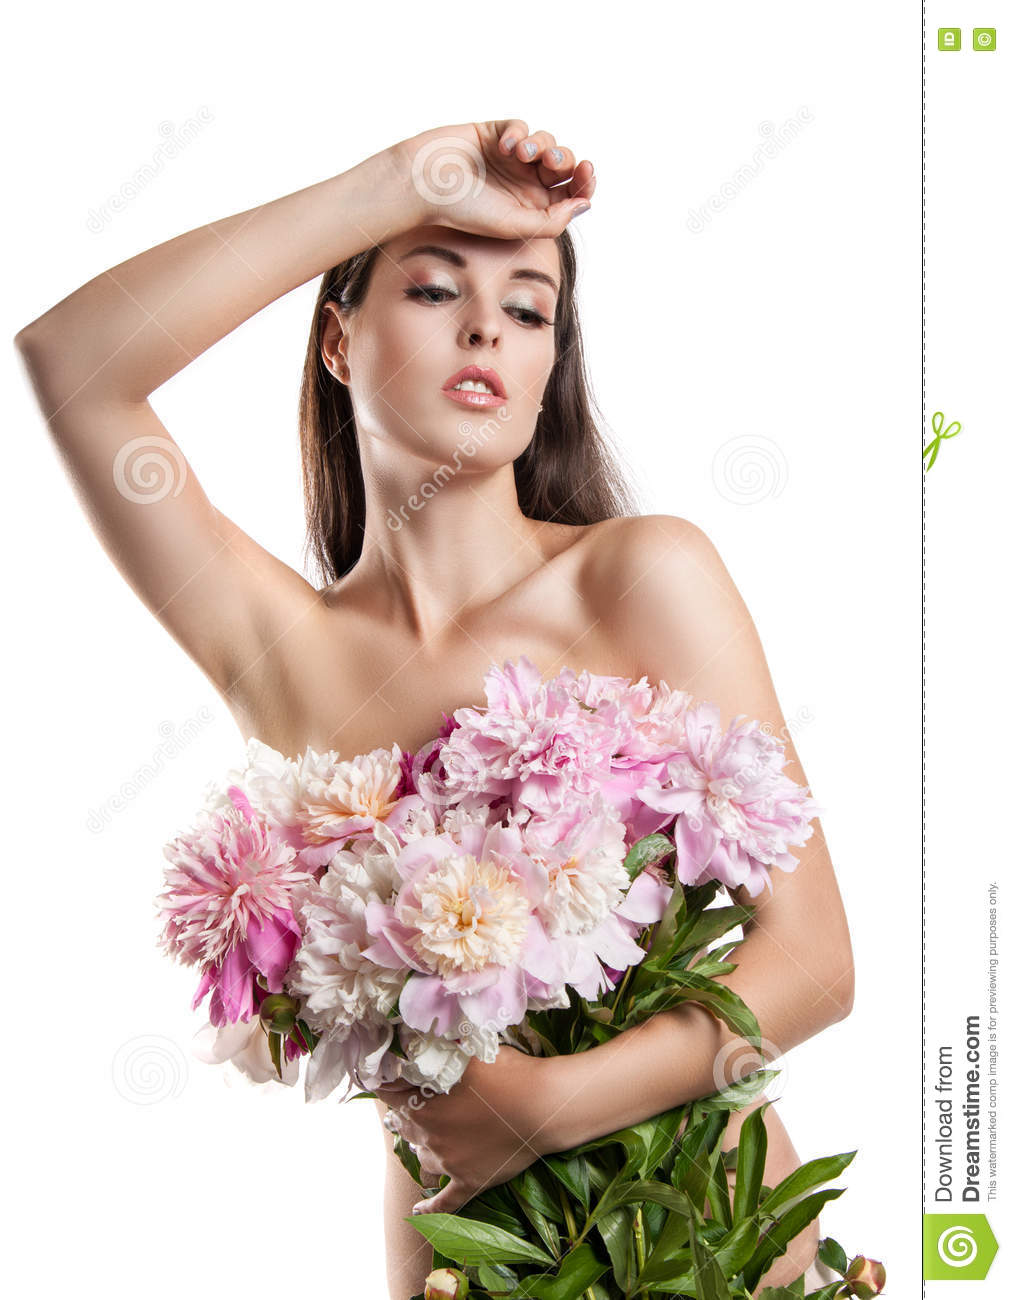 Beautiful girl with flowers peonies a woman holding a large bouquet beautiful girl with flowers peonies a woman holding a large bouquet of flowers in their izmirmasajfo